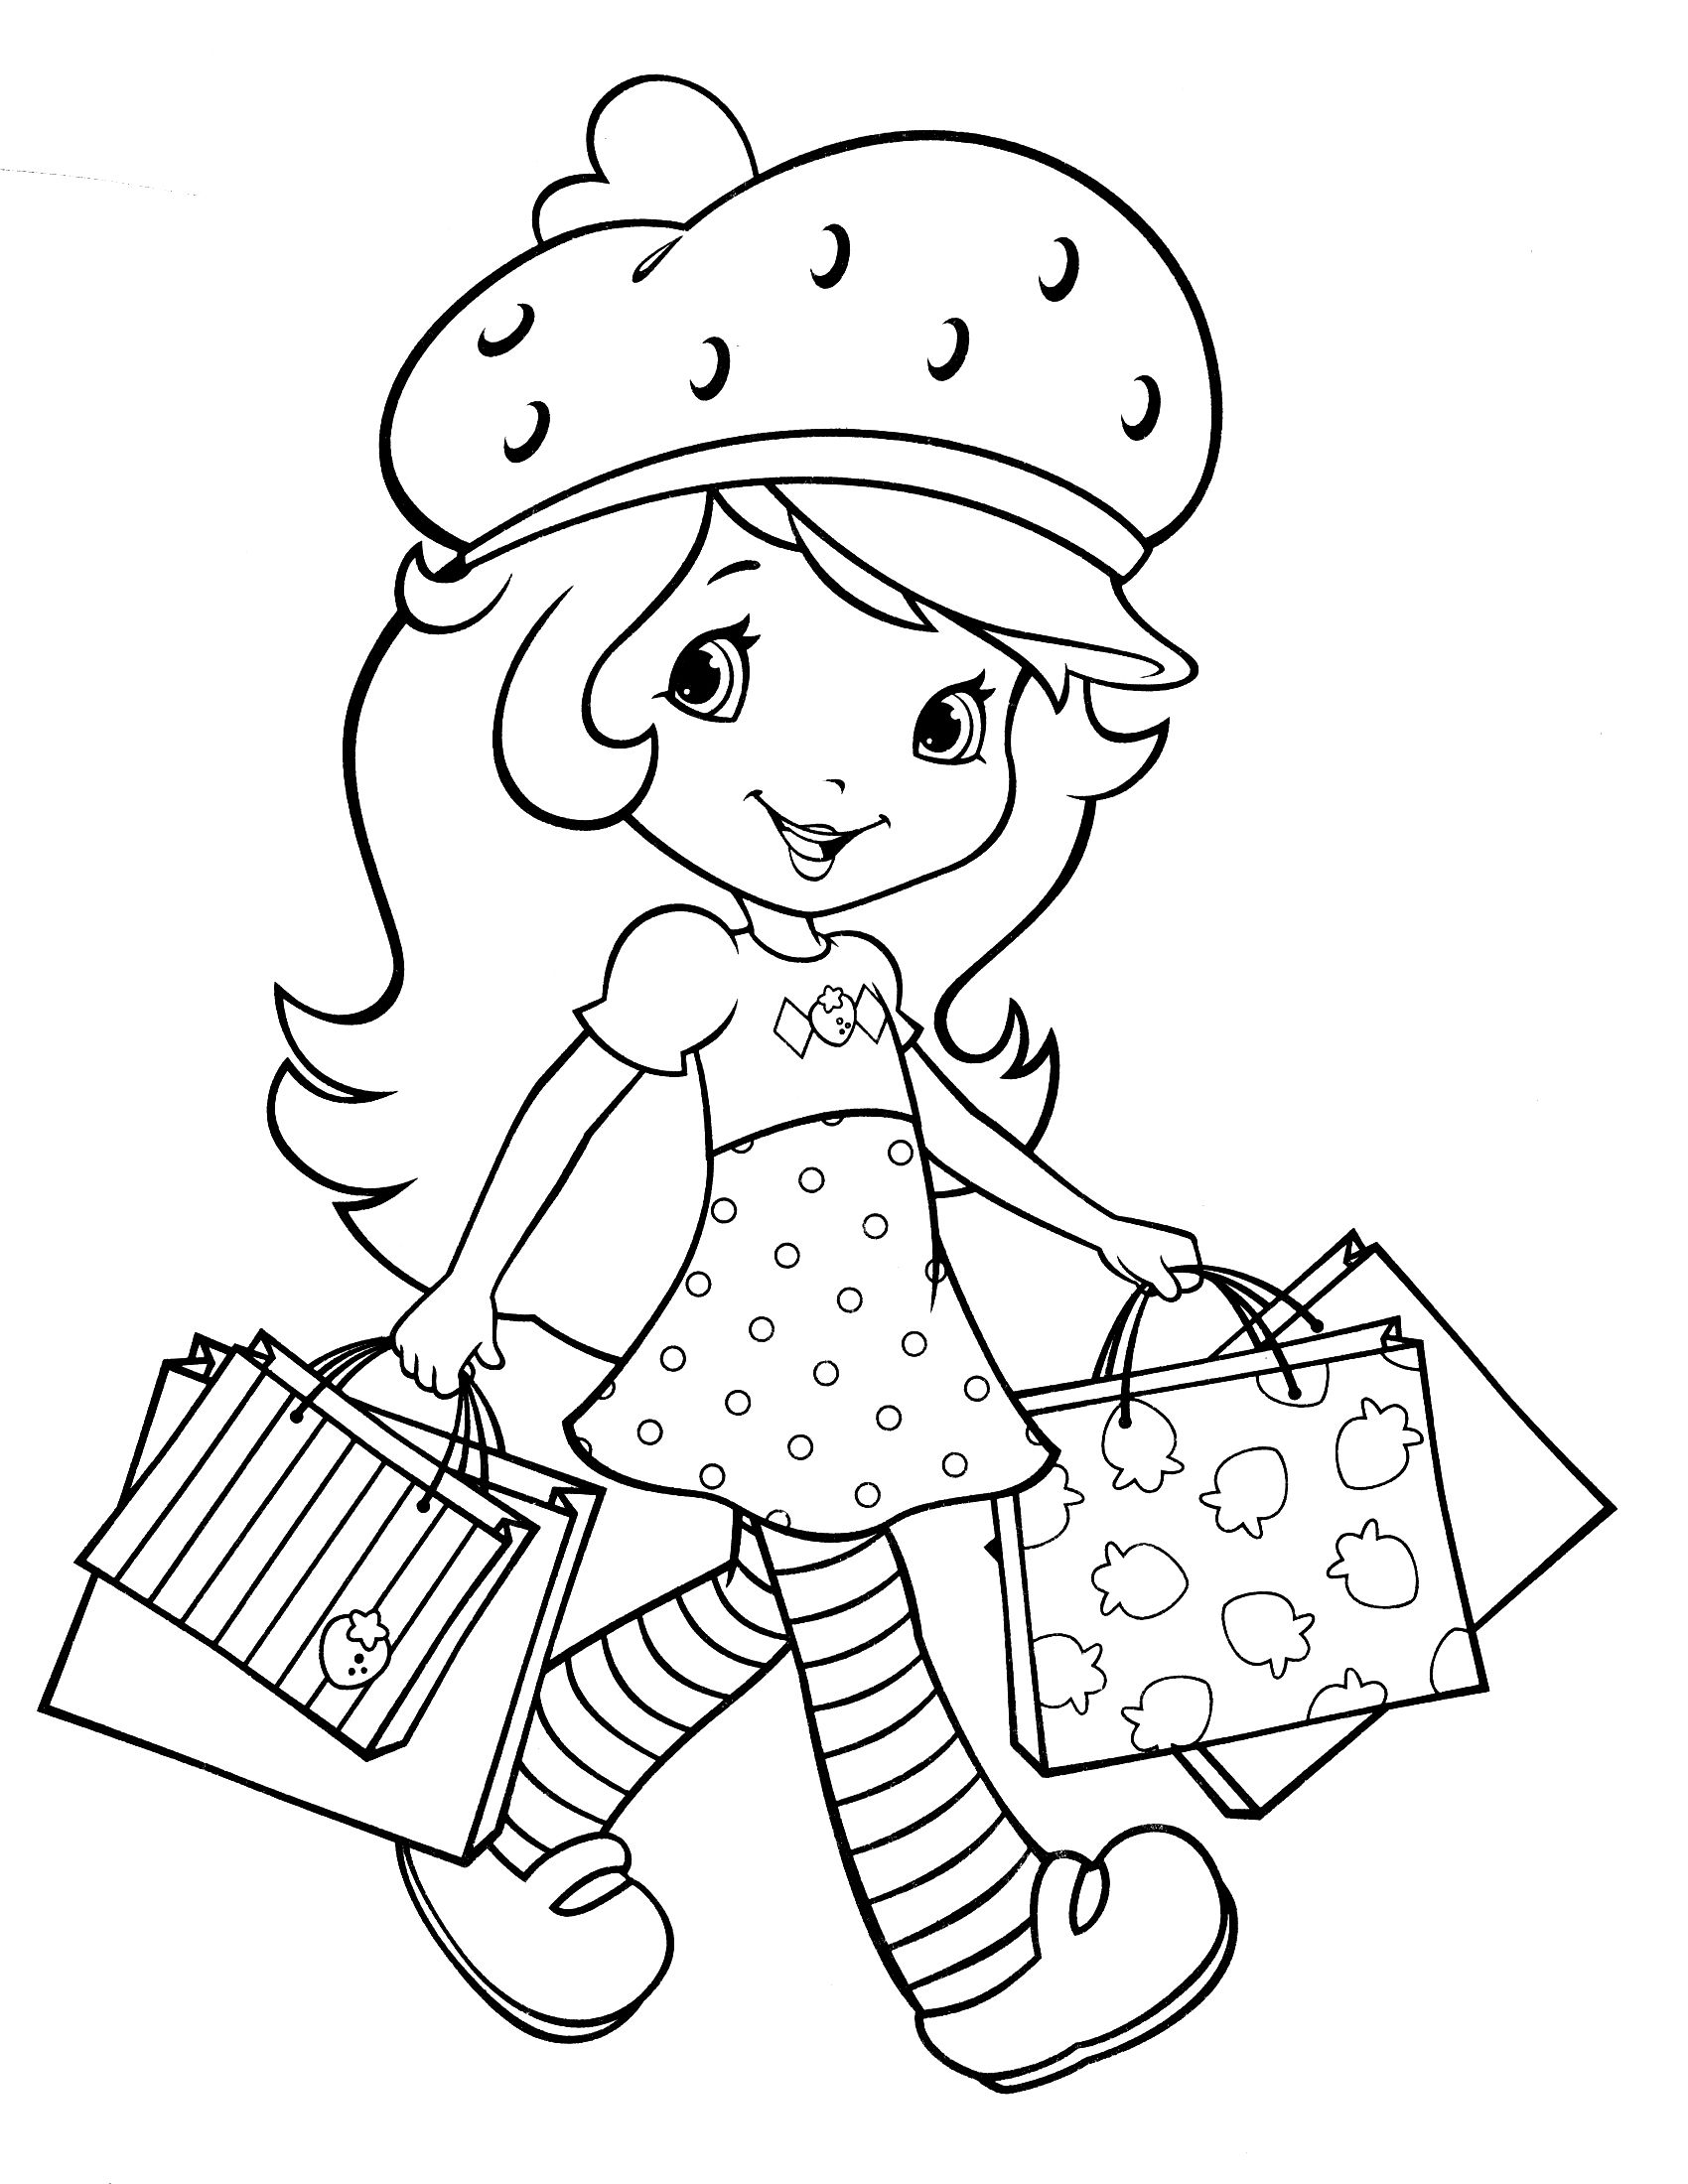 strawberry shortcake coloring page | fresitas | Pinterest ...